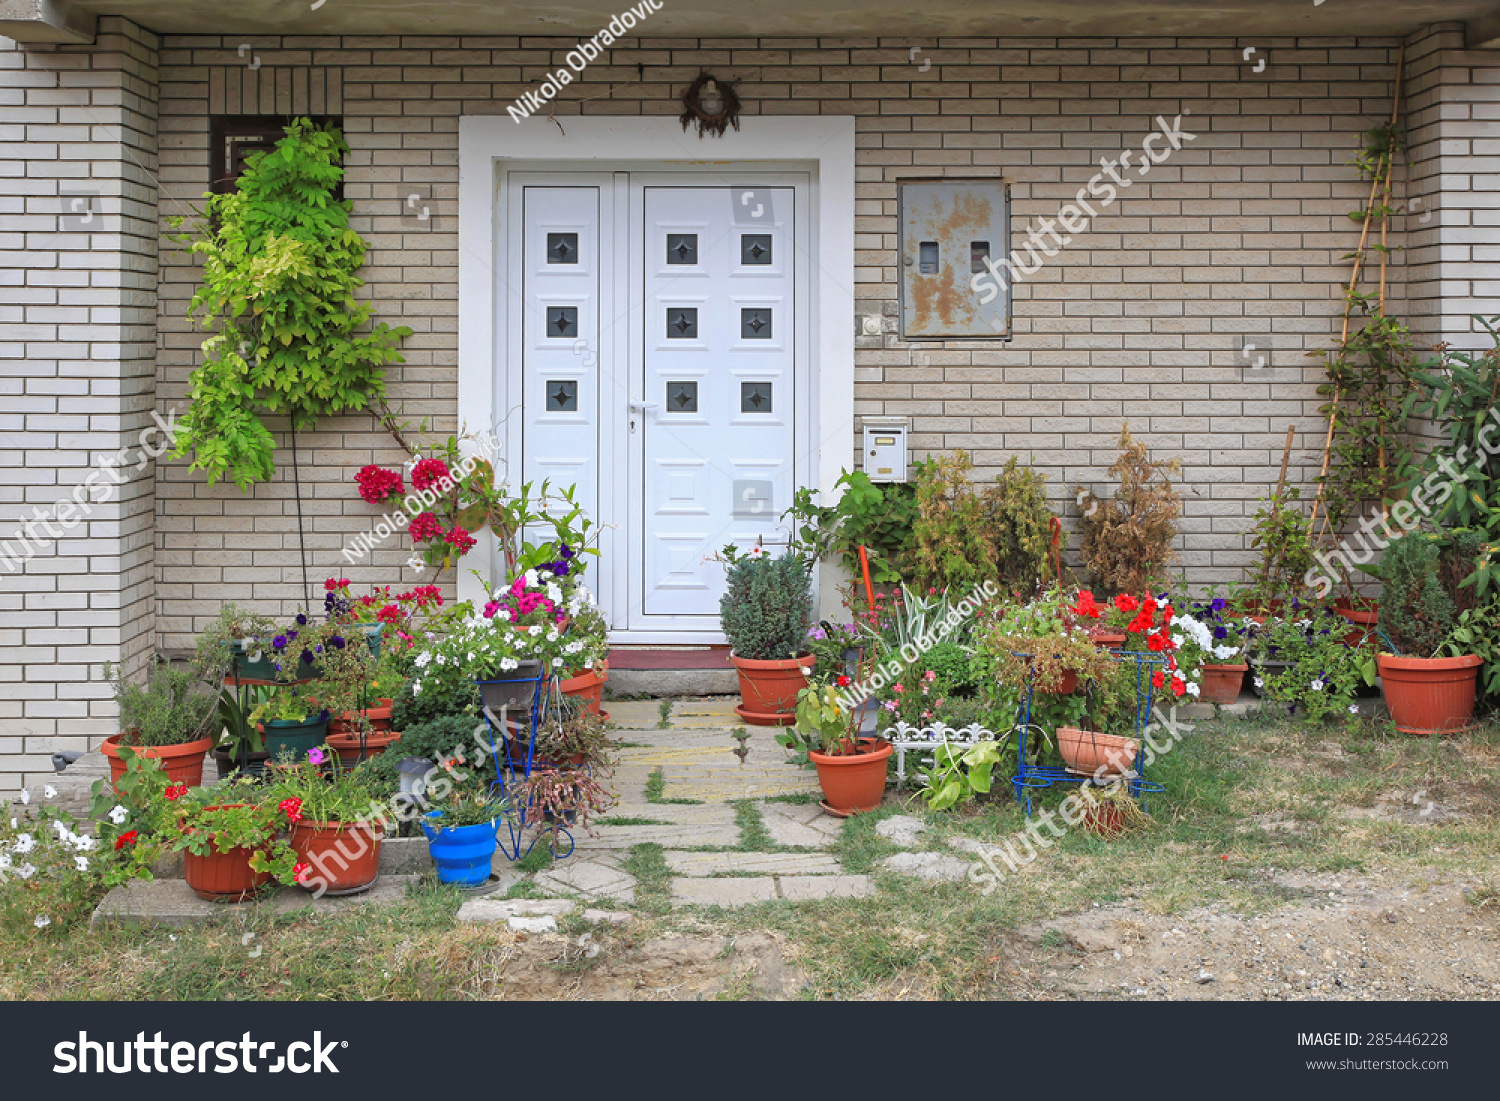 stock photo flowers and plants in front of house entrance 285446228